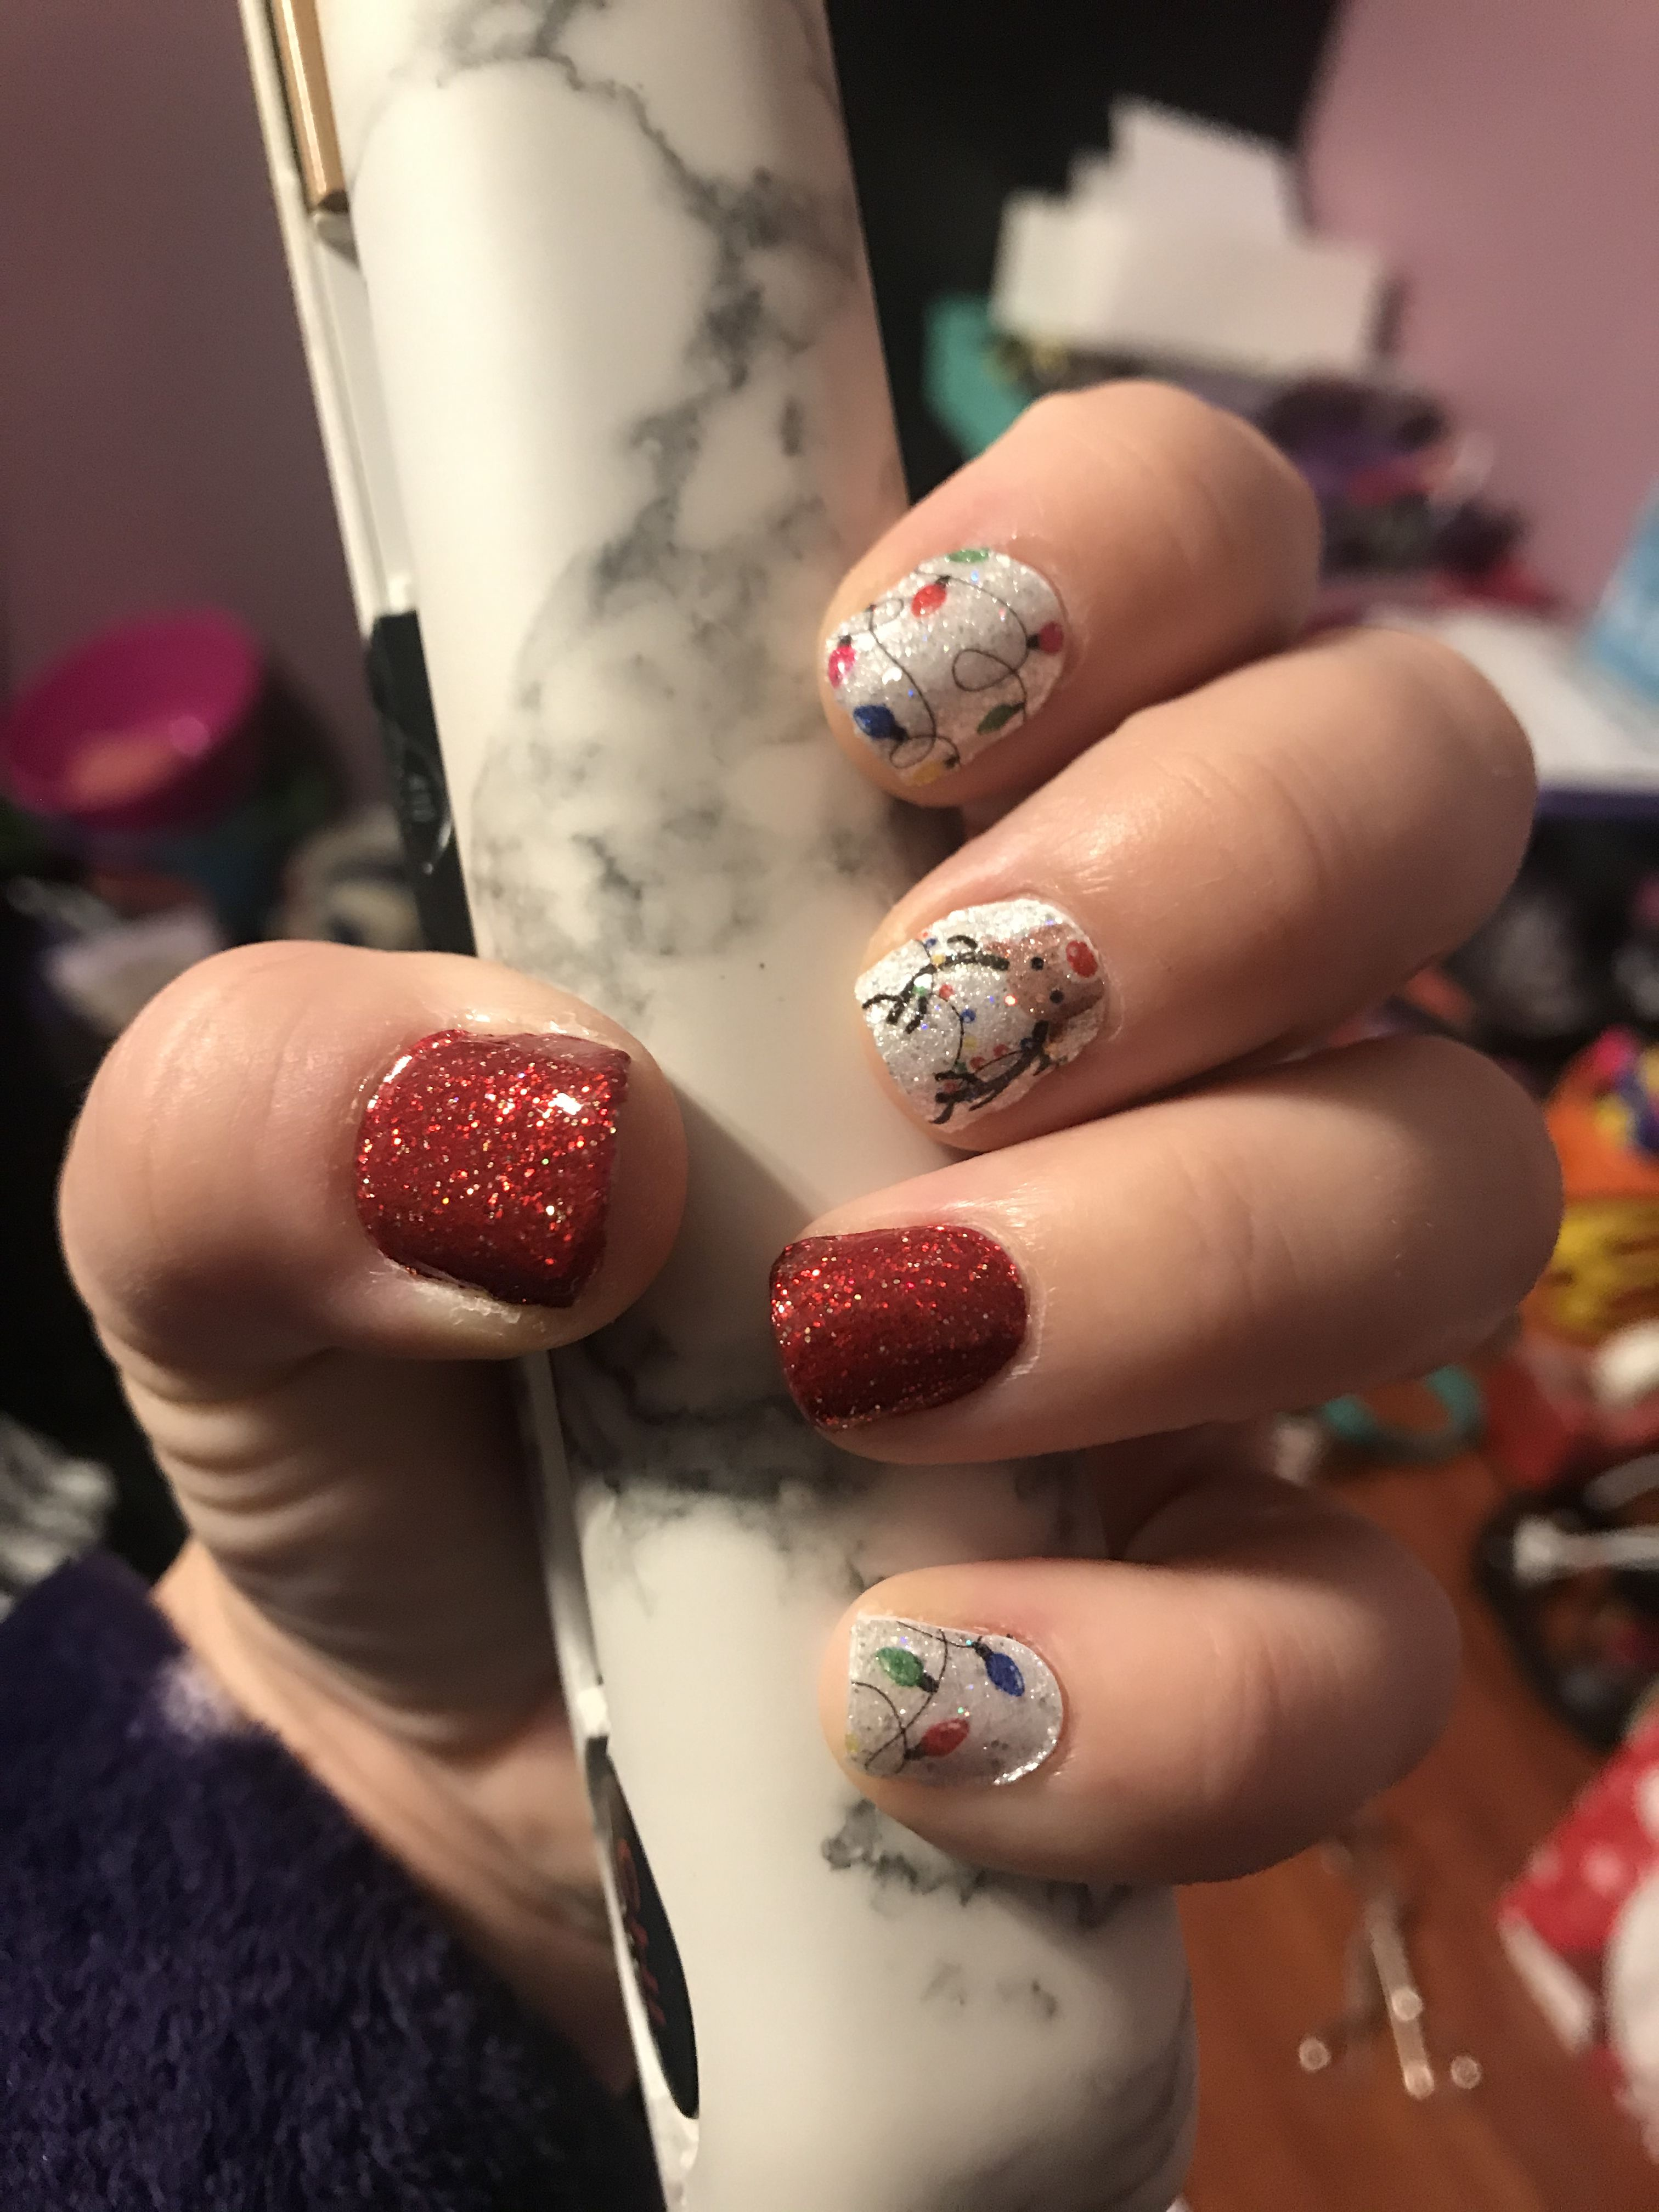 When Are Color Street Christmas Nails 2020 Christmas Nails in 2020 | Color street nails, Christmas nails